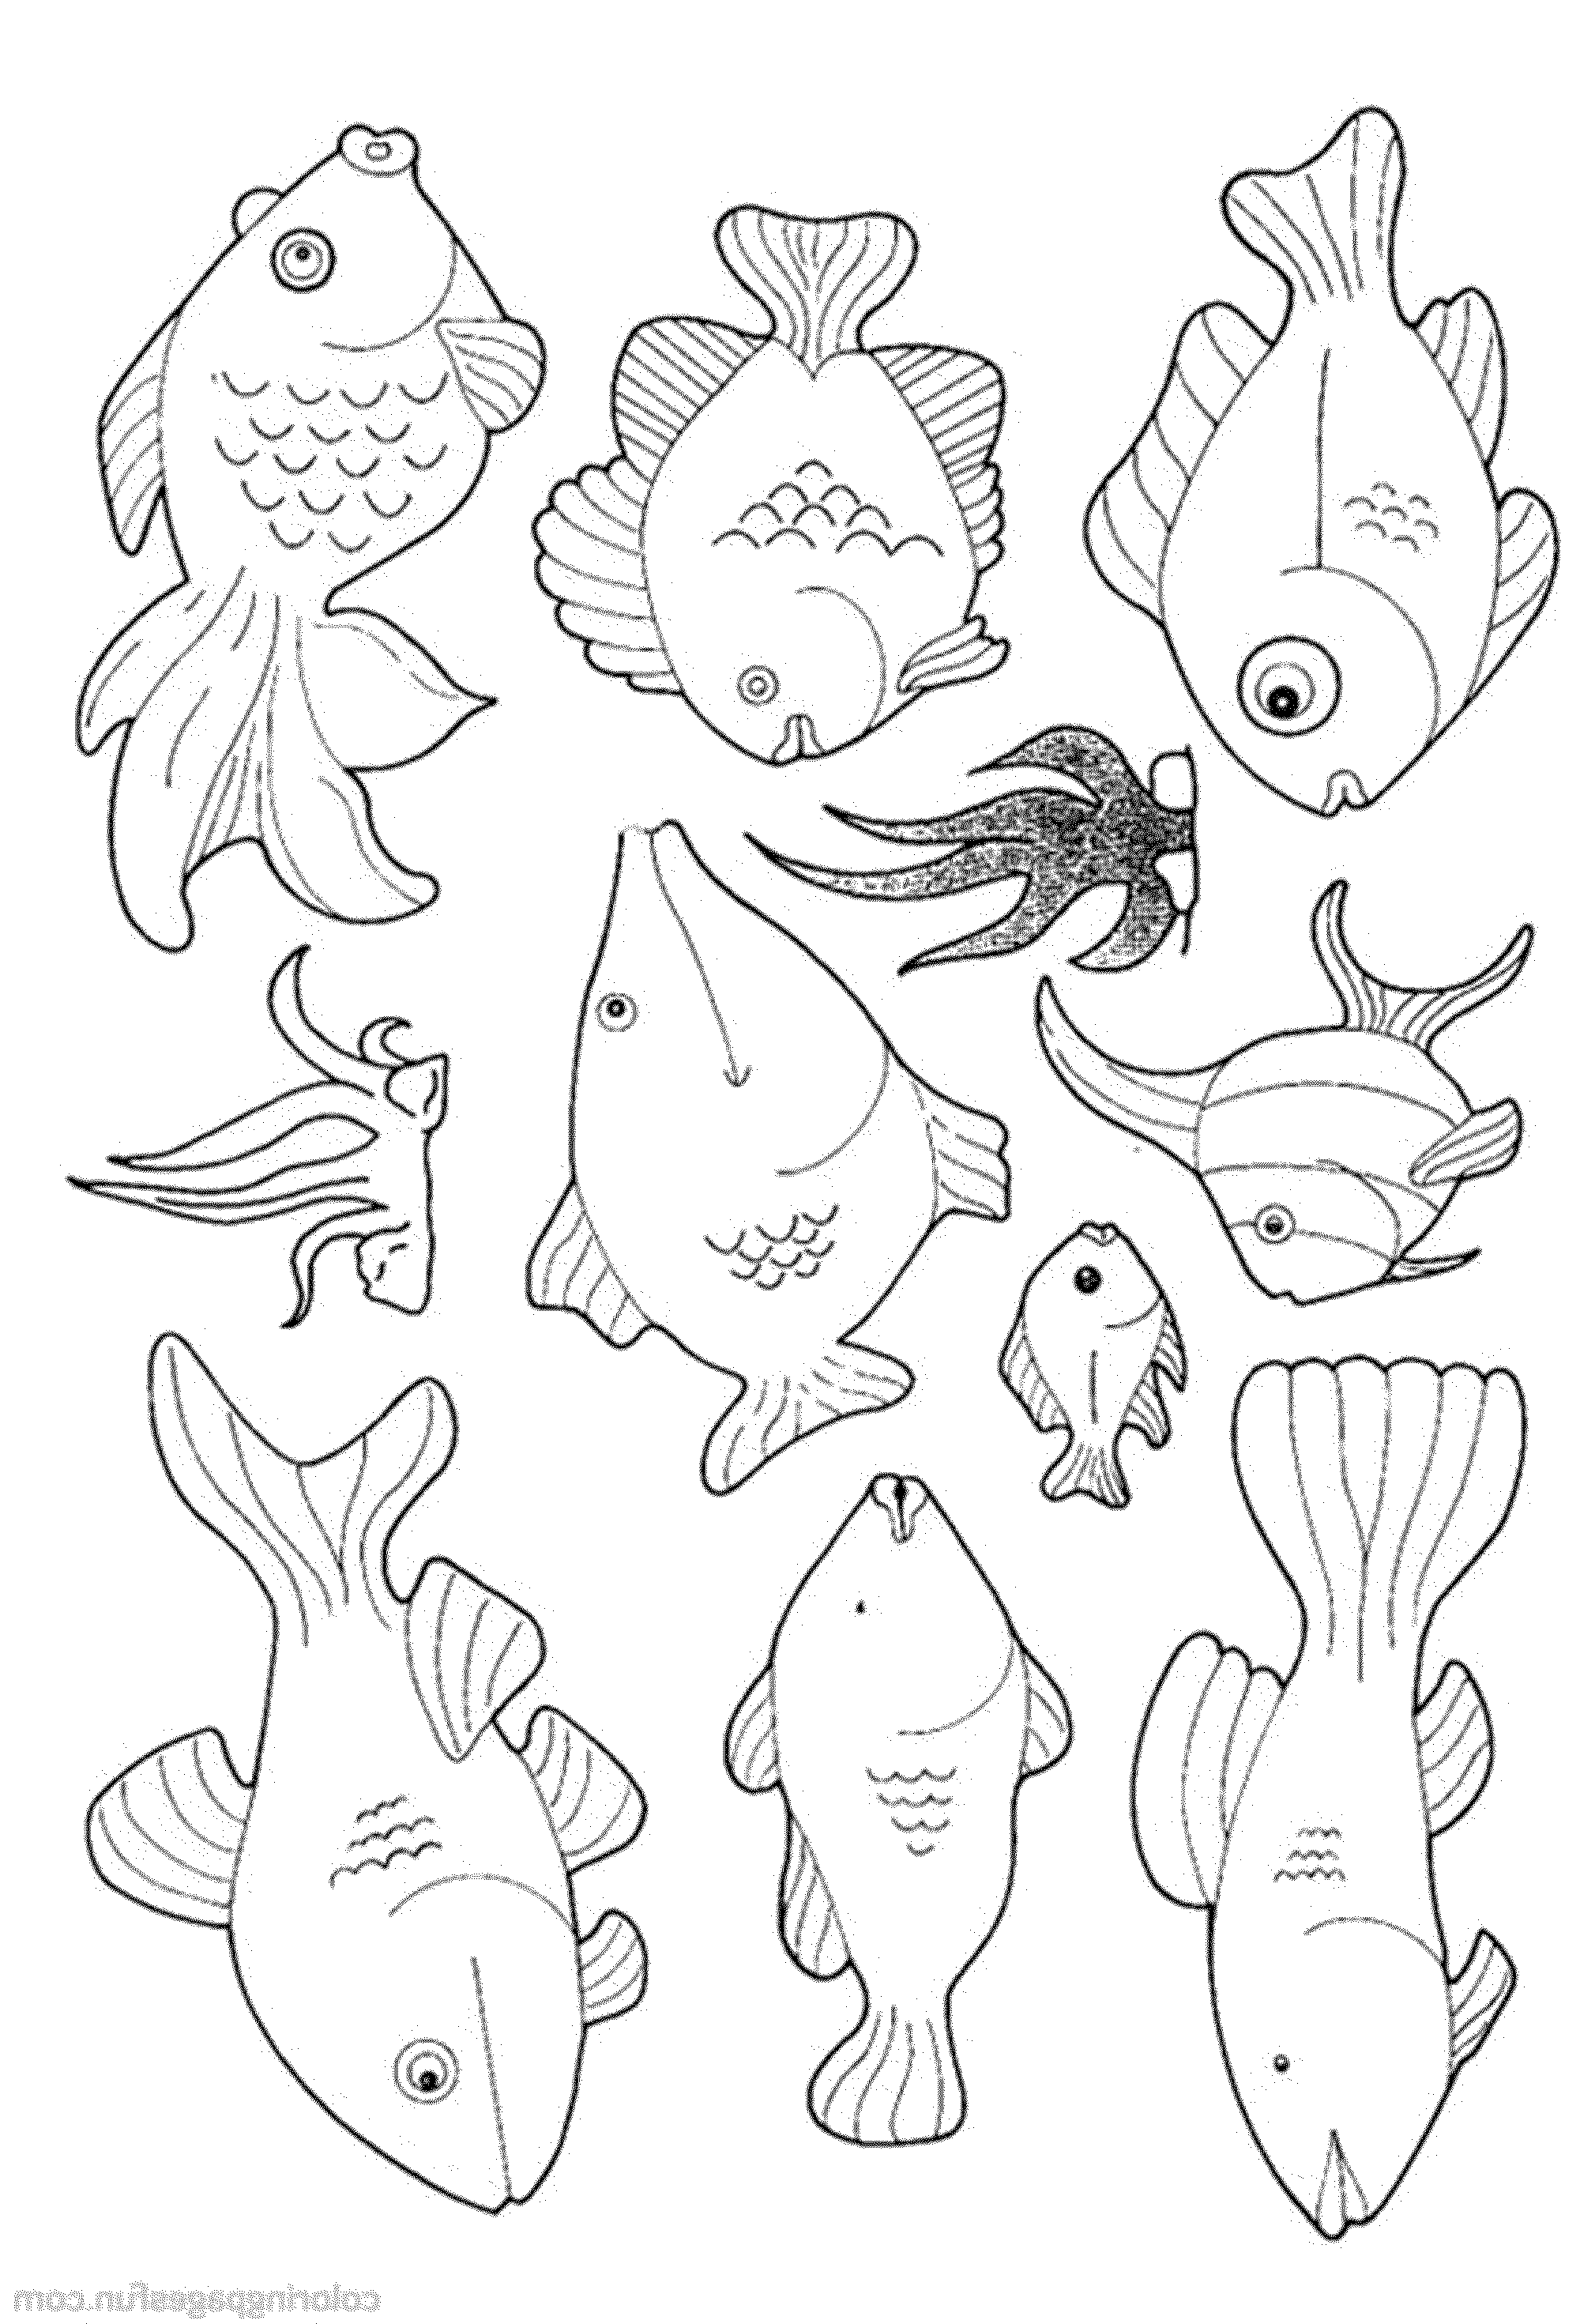 fish printable coloring pages - Coloring Page Of Fish